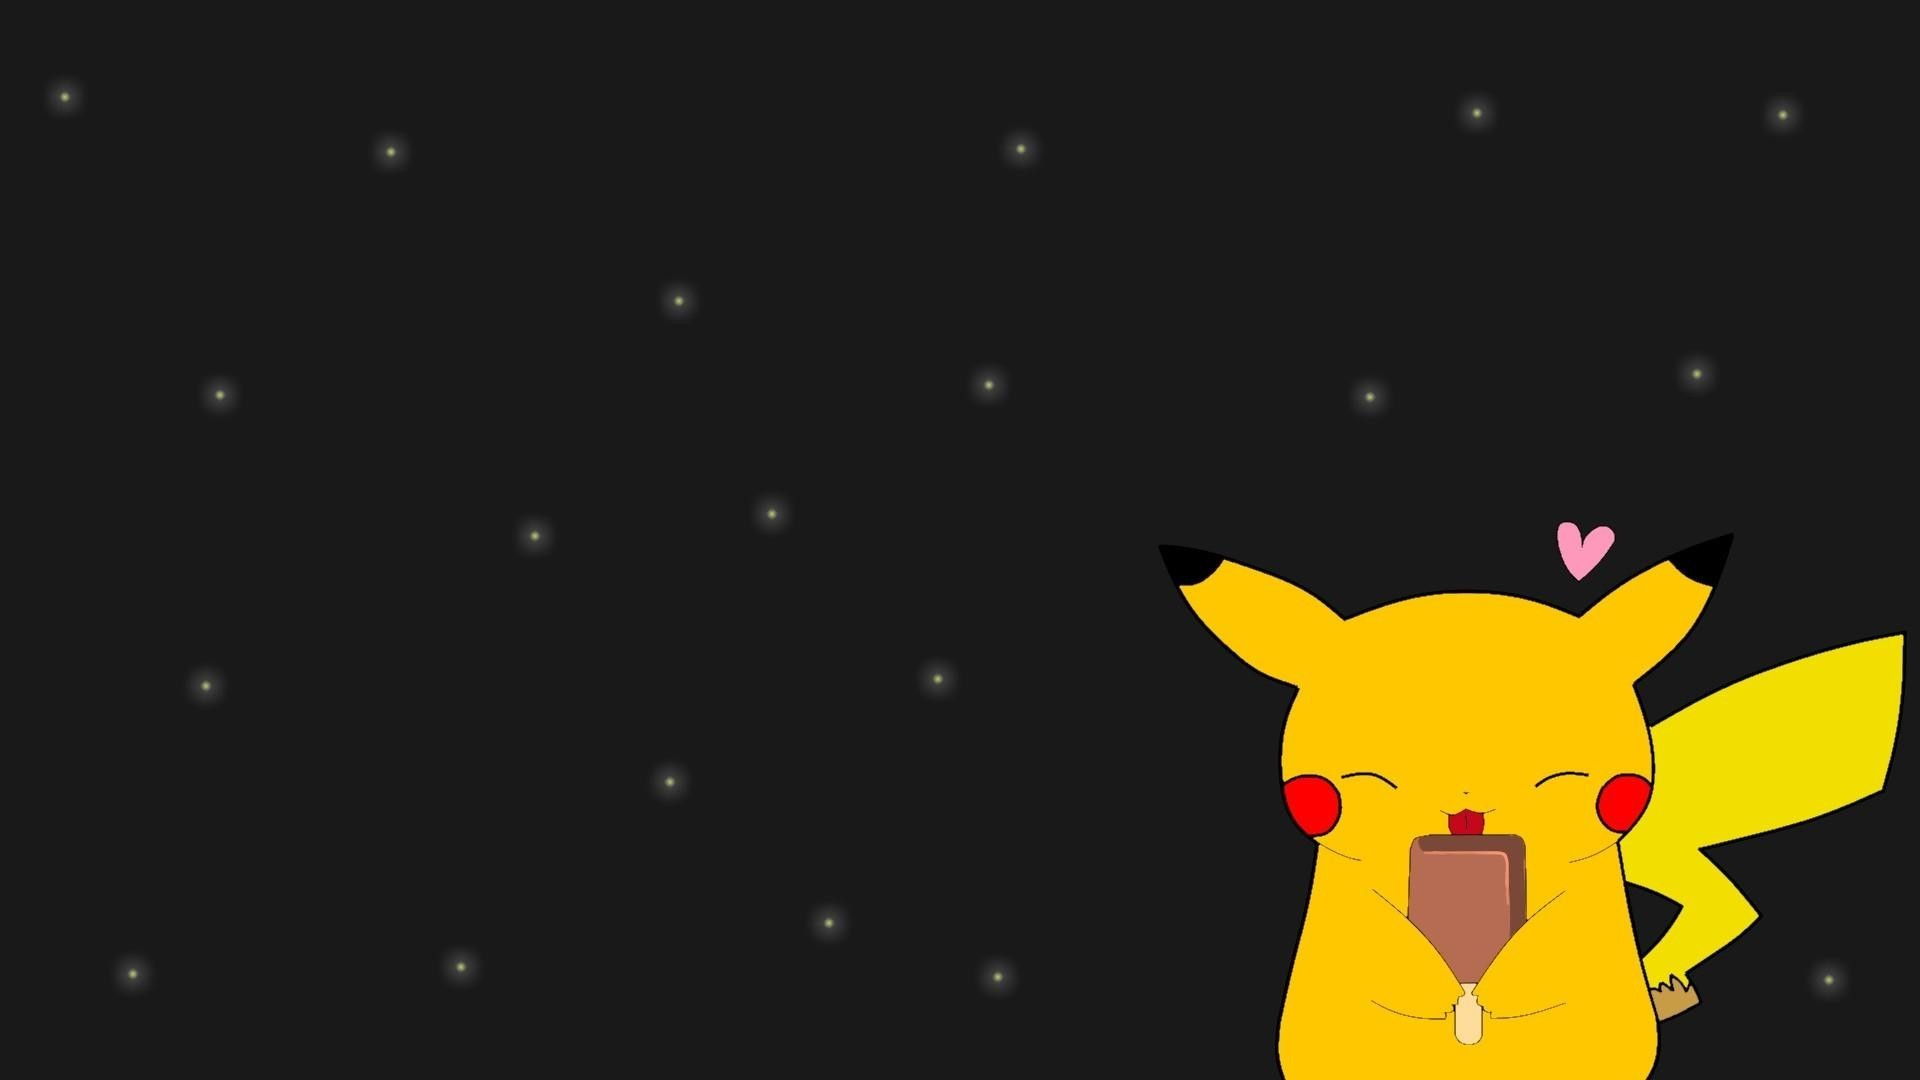 1920x1080  Free Pokemon Pikachu Hd Image High Quality Wallpaper Images X  Full Of Mobile